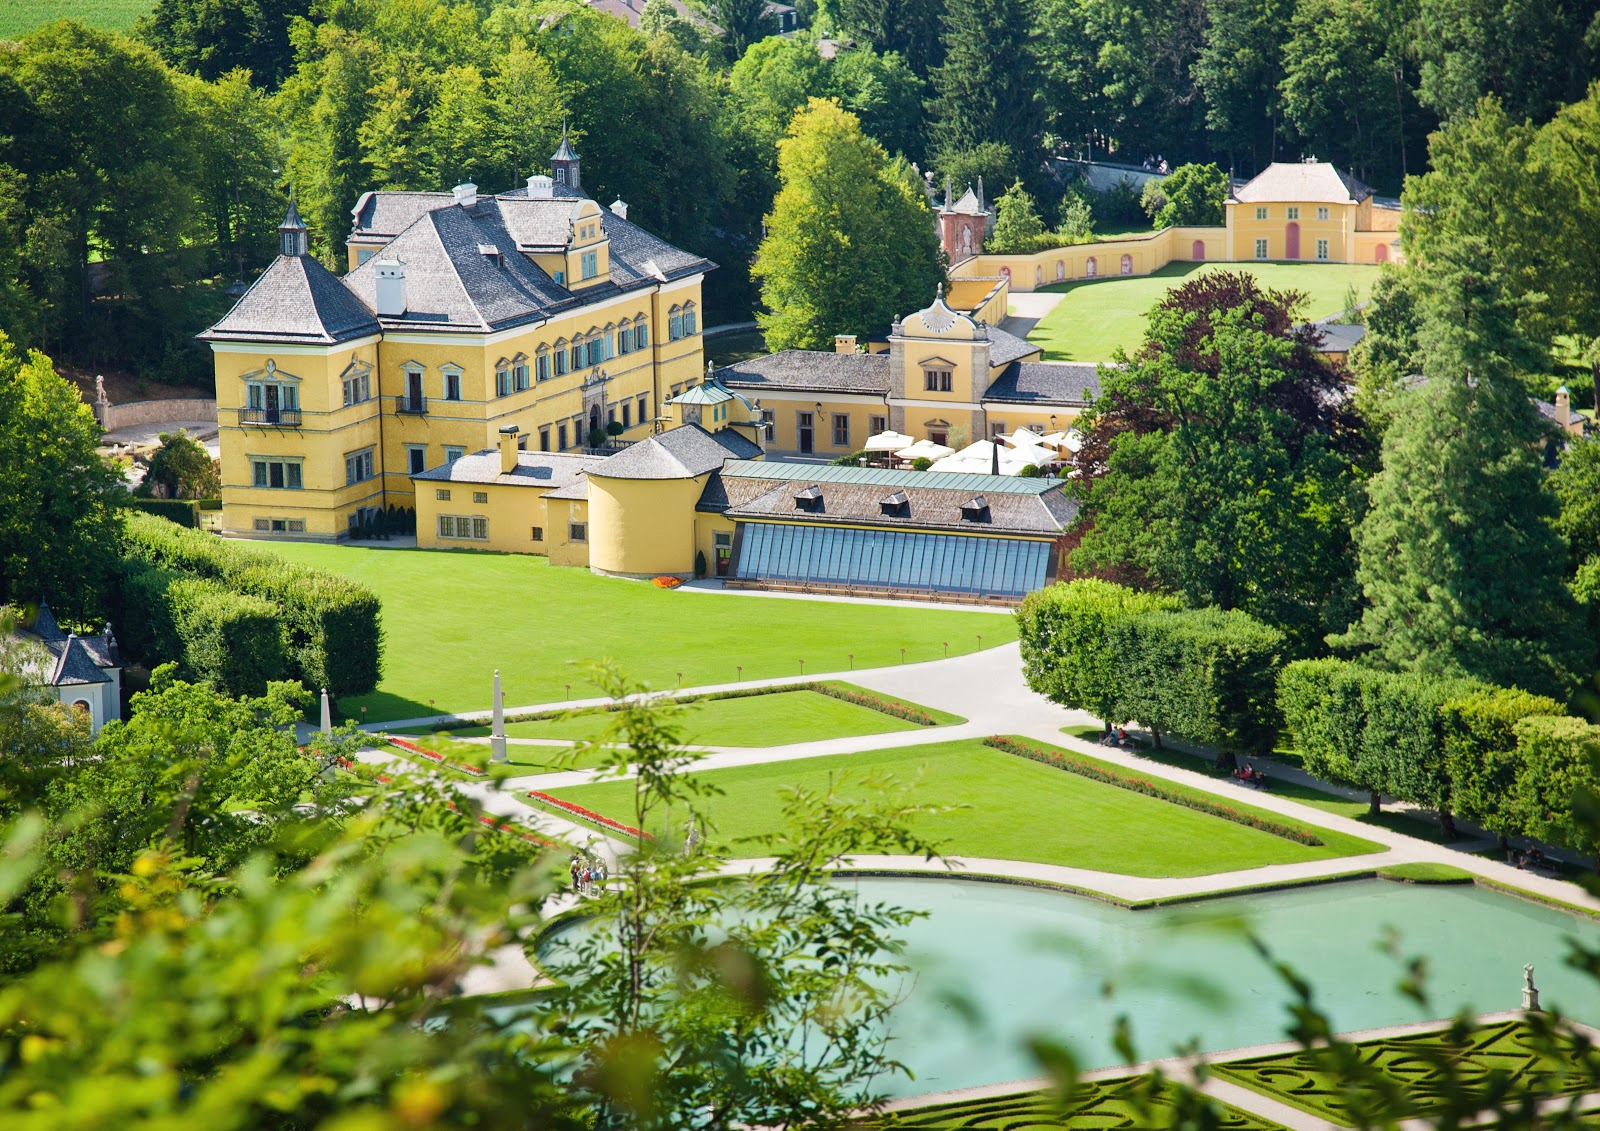 The Hellbrunn Palace in Salzburg, Austria. Photo: © Tourismus-Salzburg GmbH.